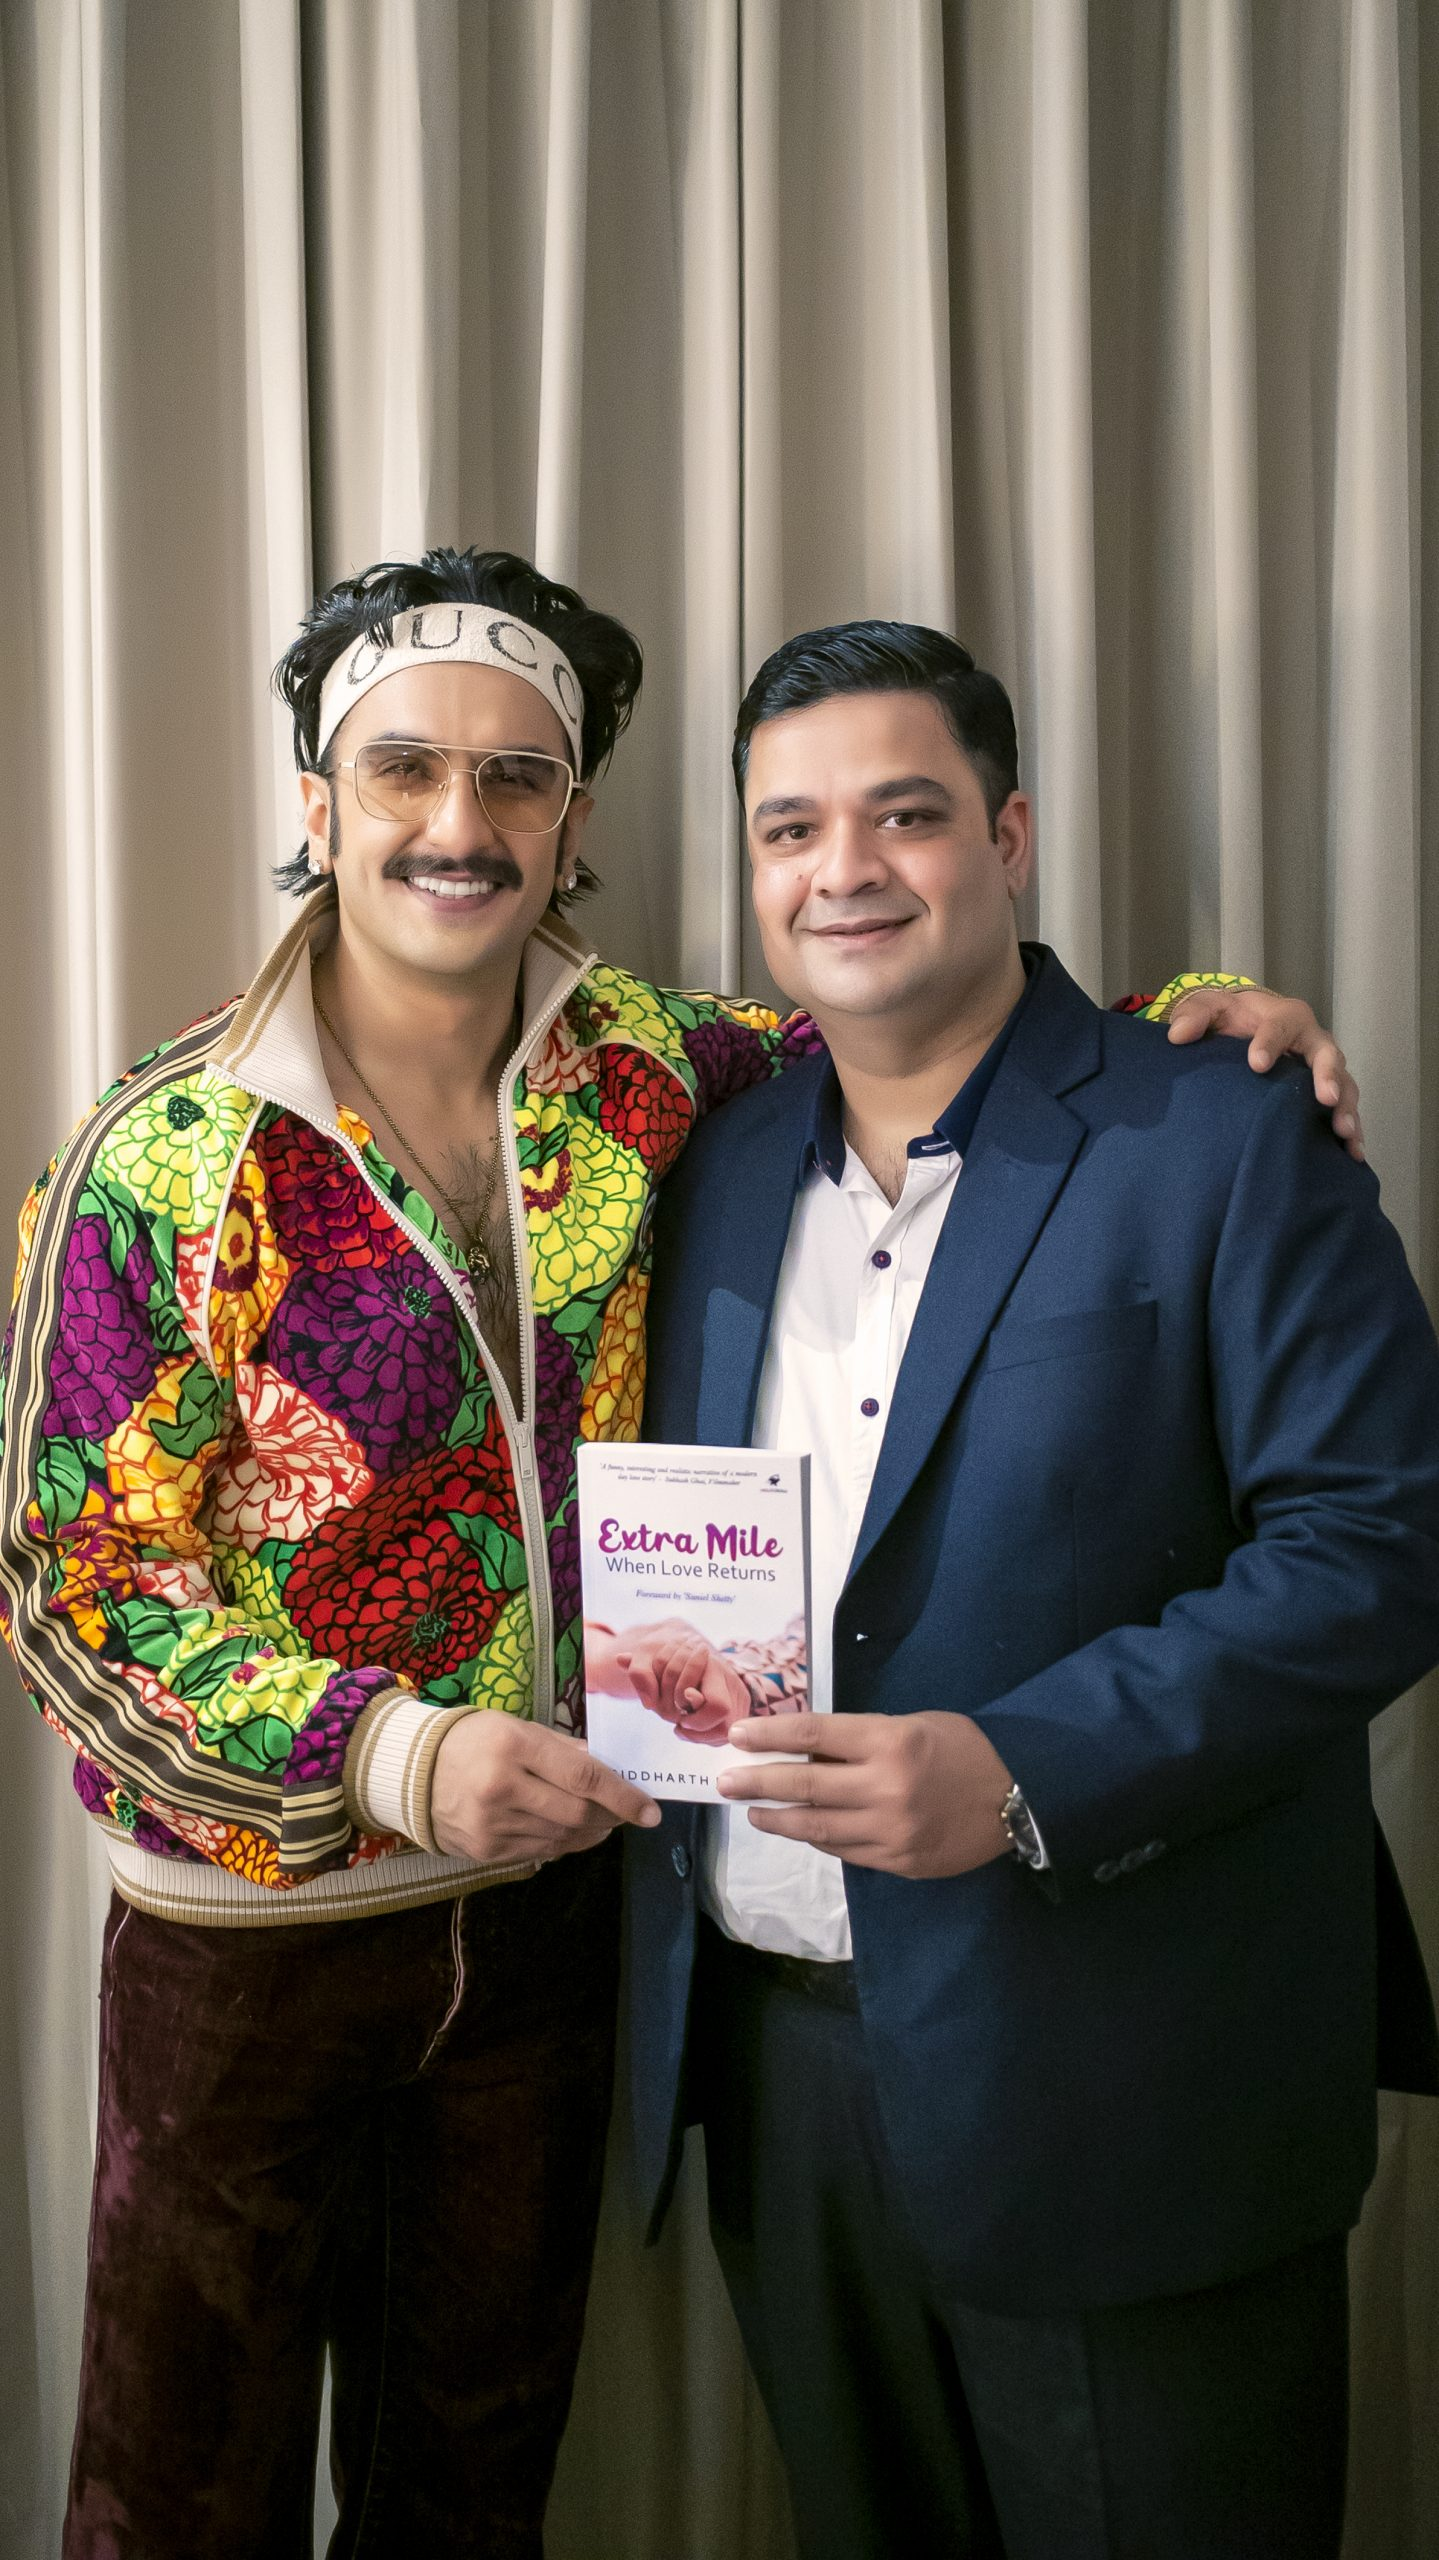 Siddharth Jaiswal, Deputy Commissioner (IRS), Writes a Love Story 'Extra Mile When Love Returns' Launched by Bollywood Actor Ranveer Singh 9